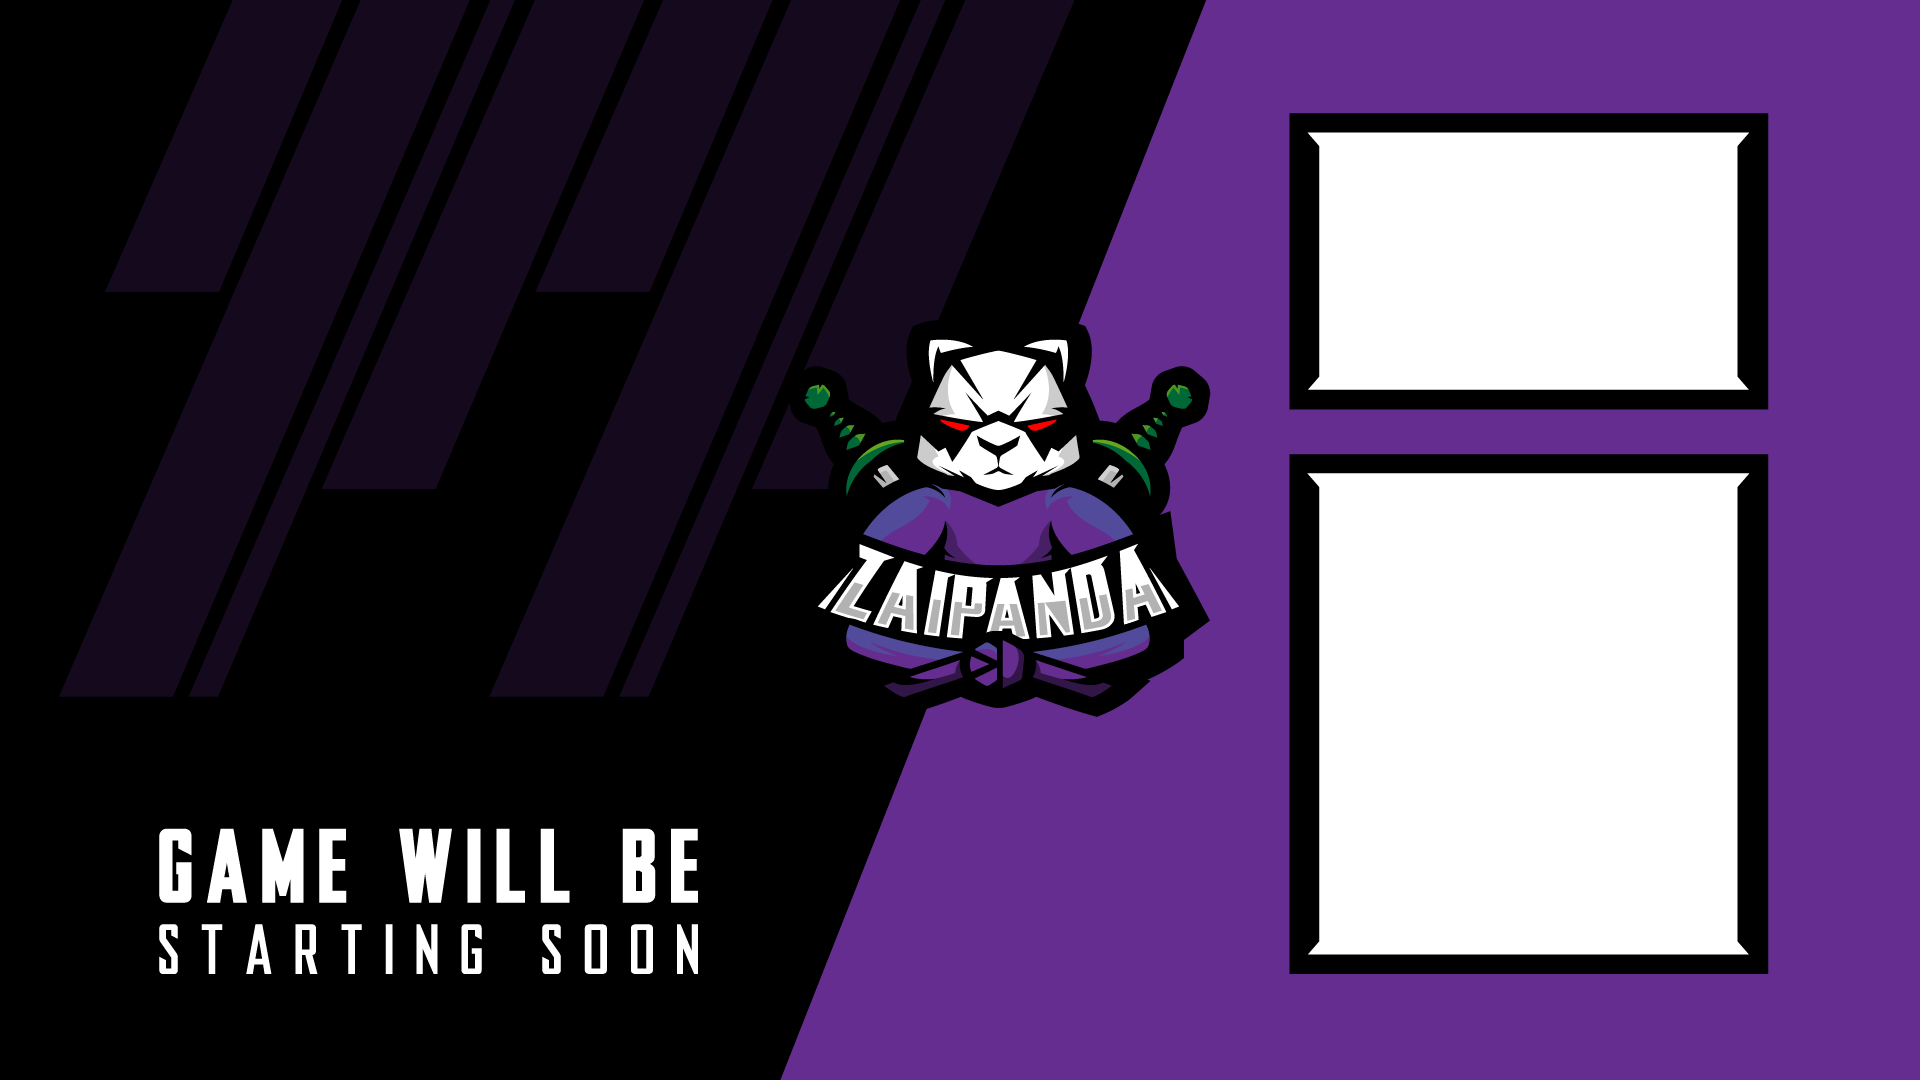 Zaipanda Twitch Channel Design